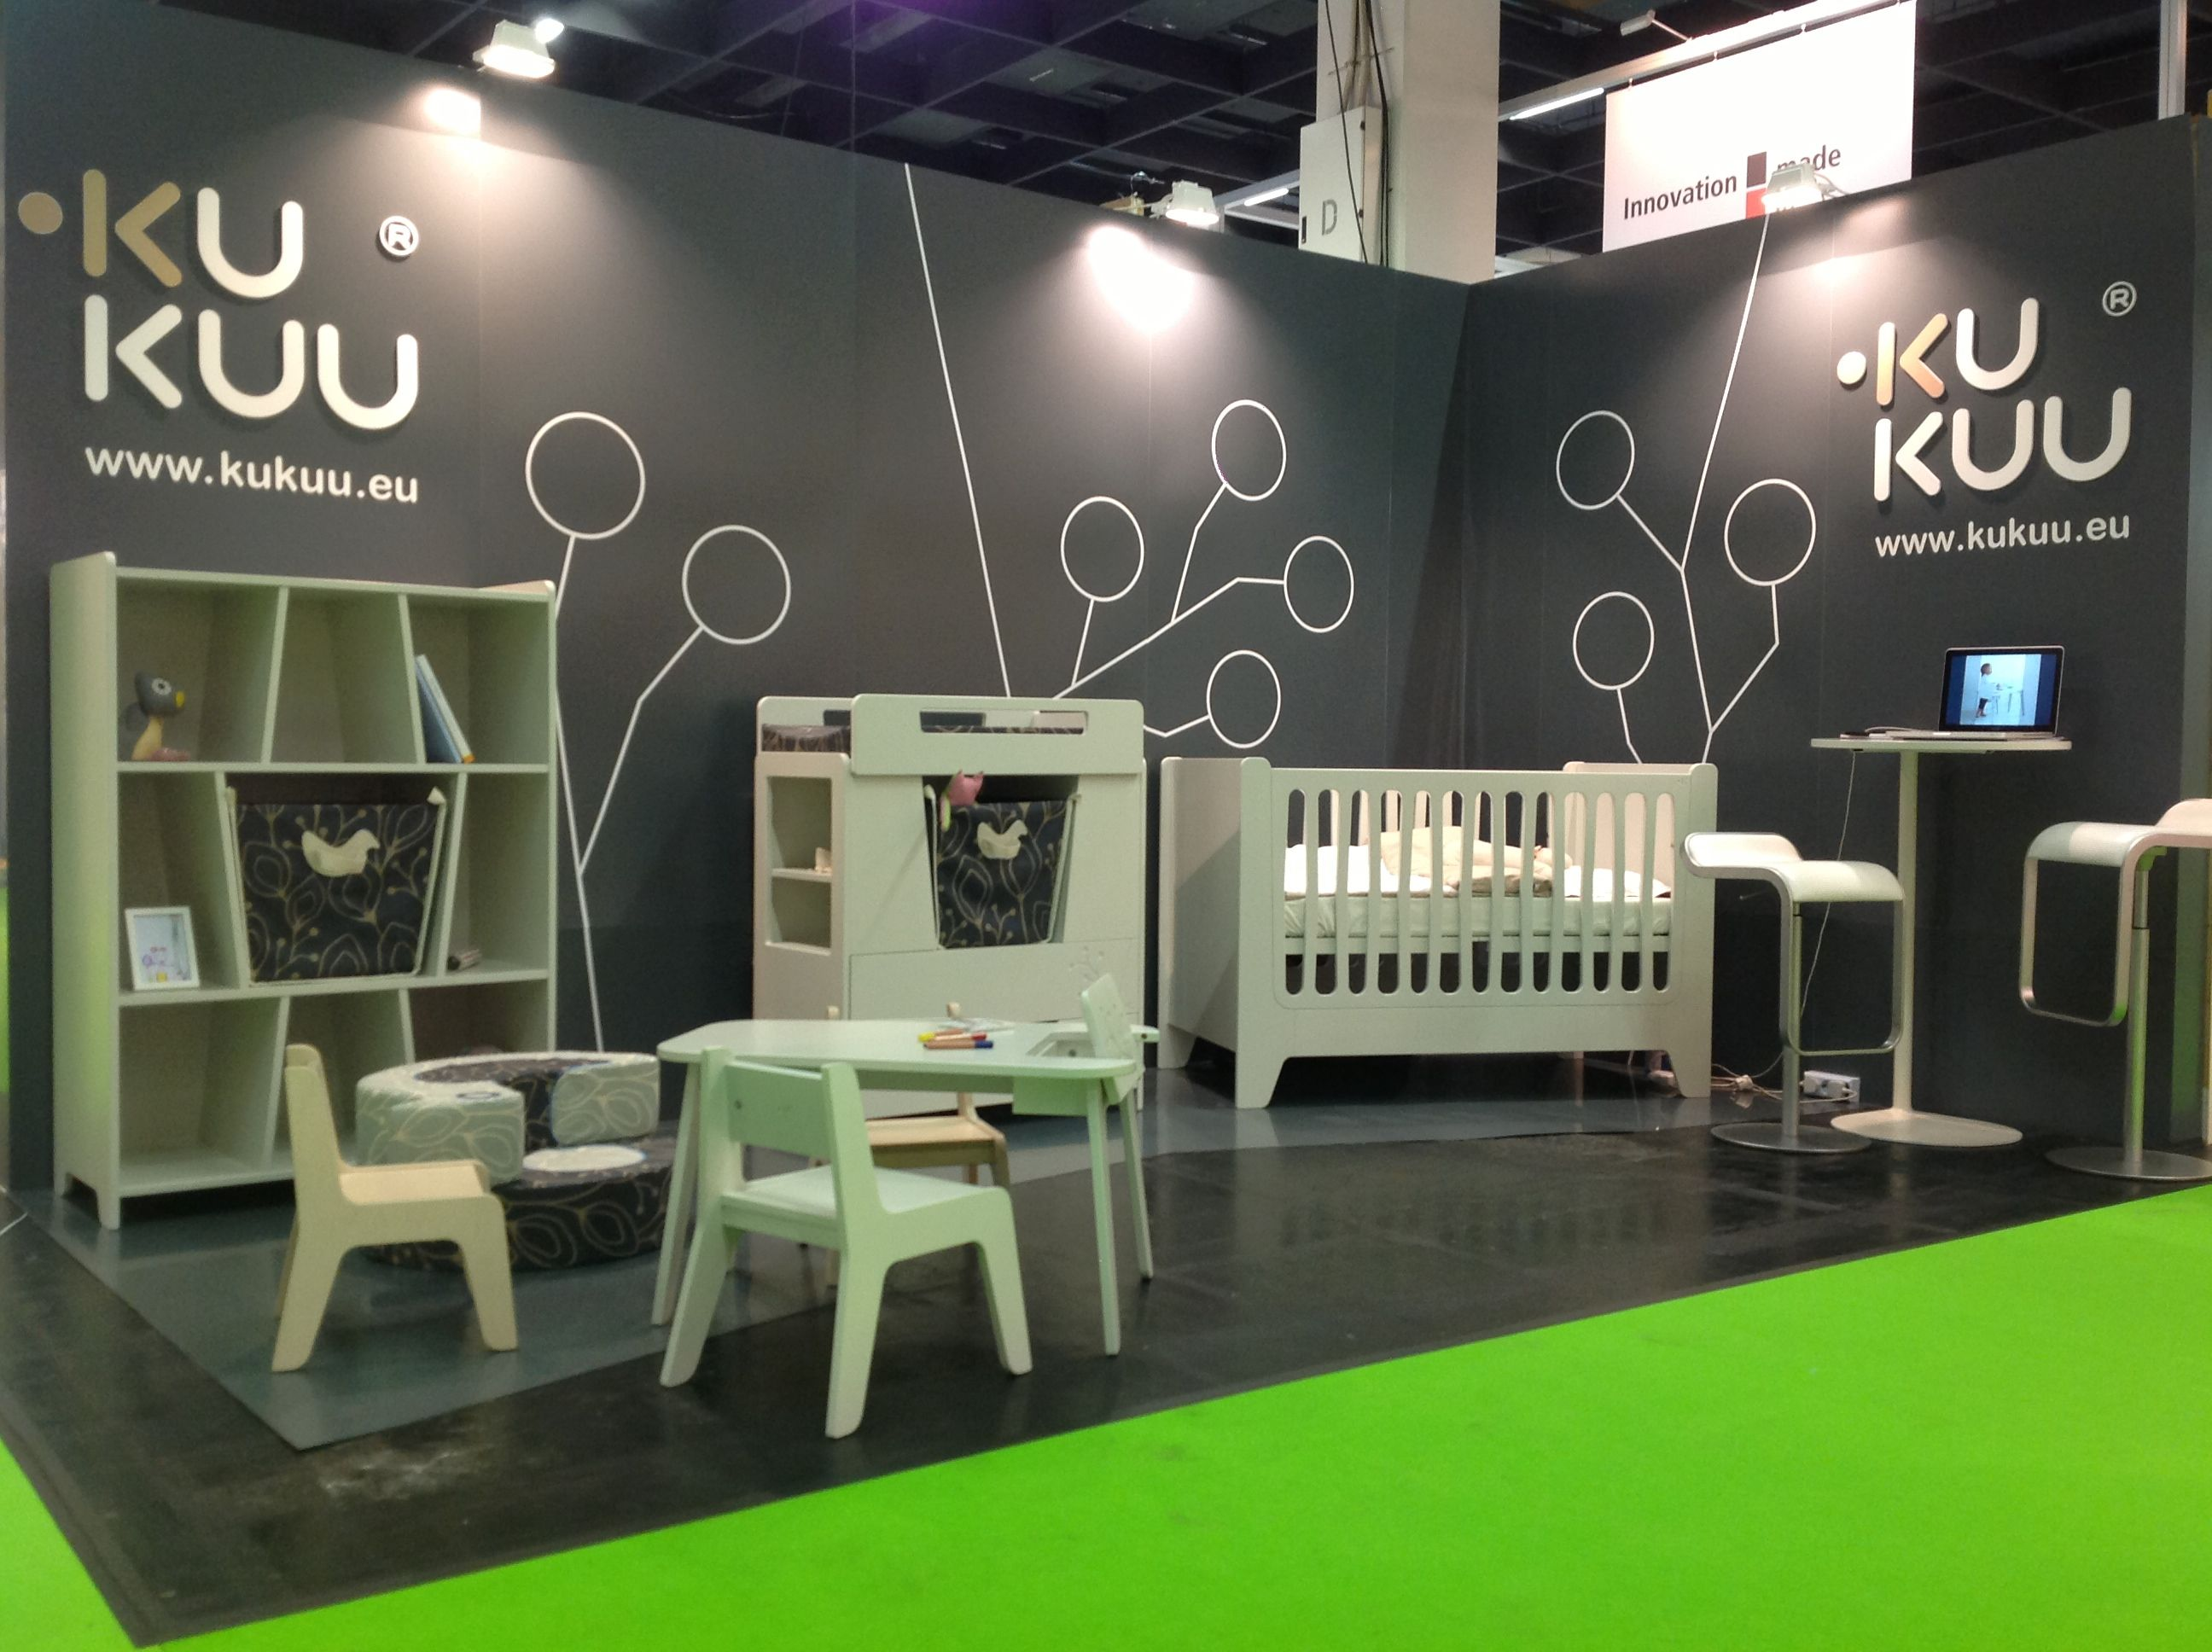 check out the modern one of a kind kukuu baby nursery furniture  - check out the modern one of a kind kukuu baby nursery furniture rangefeaturing